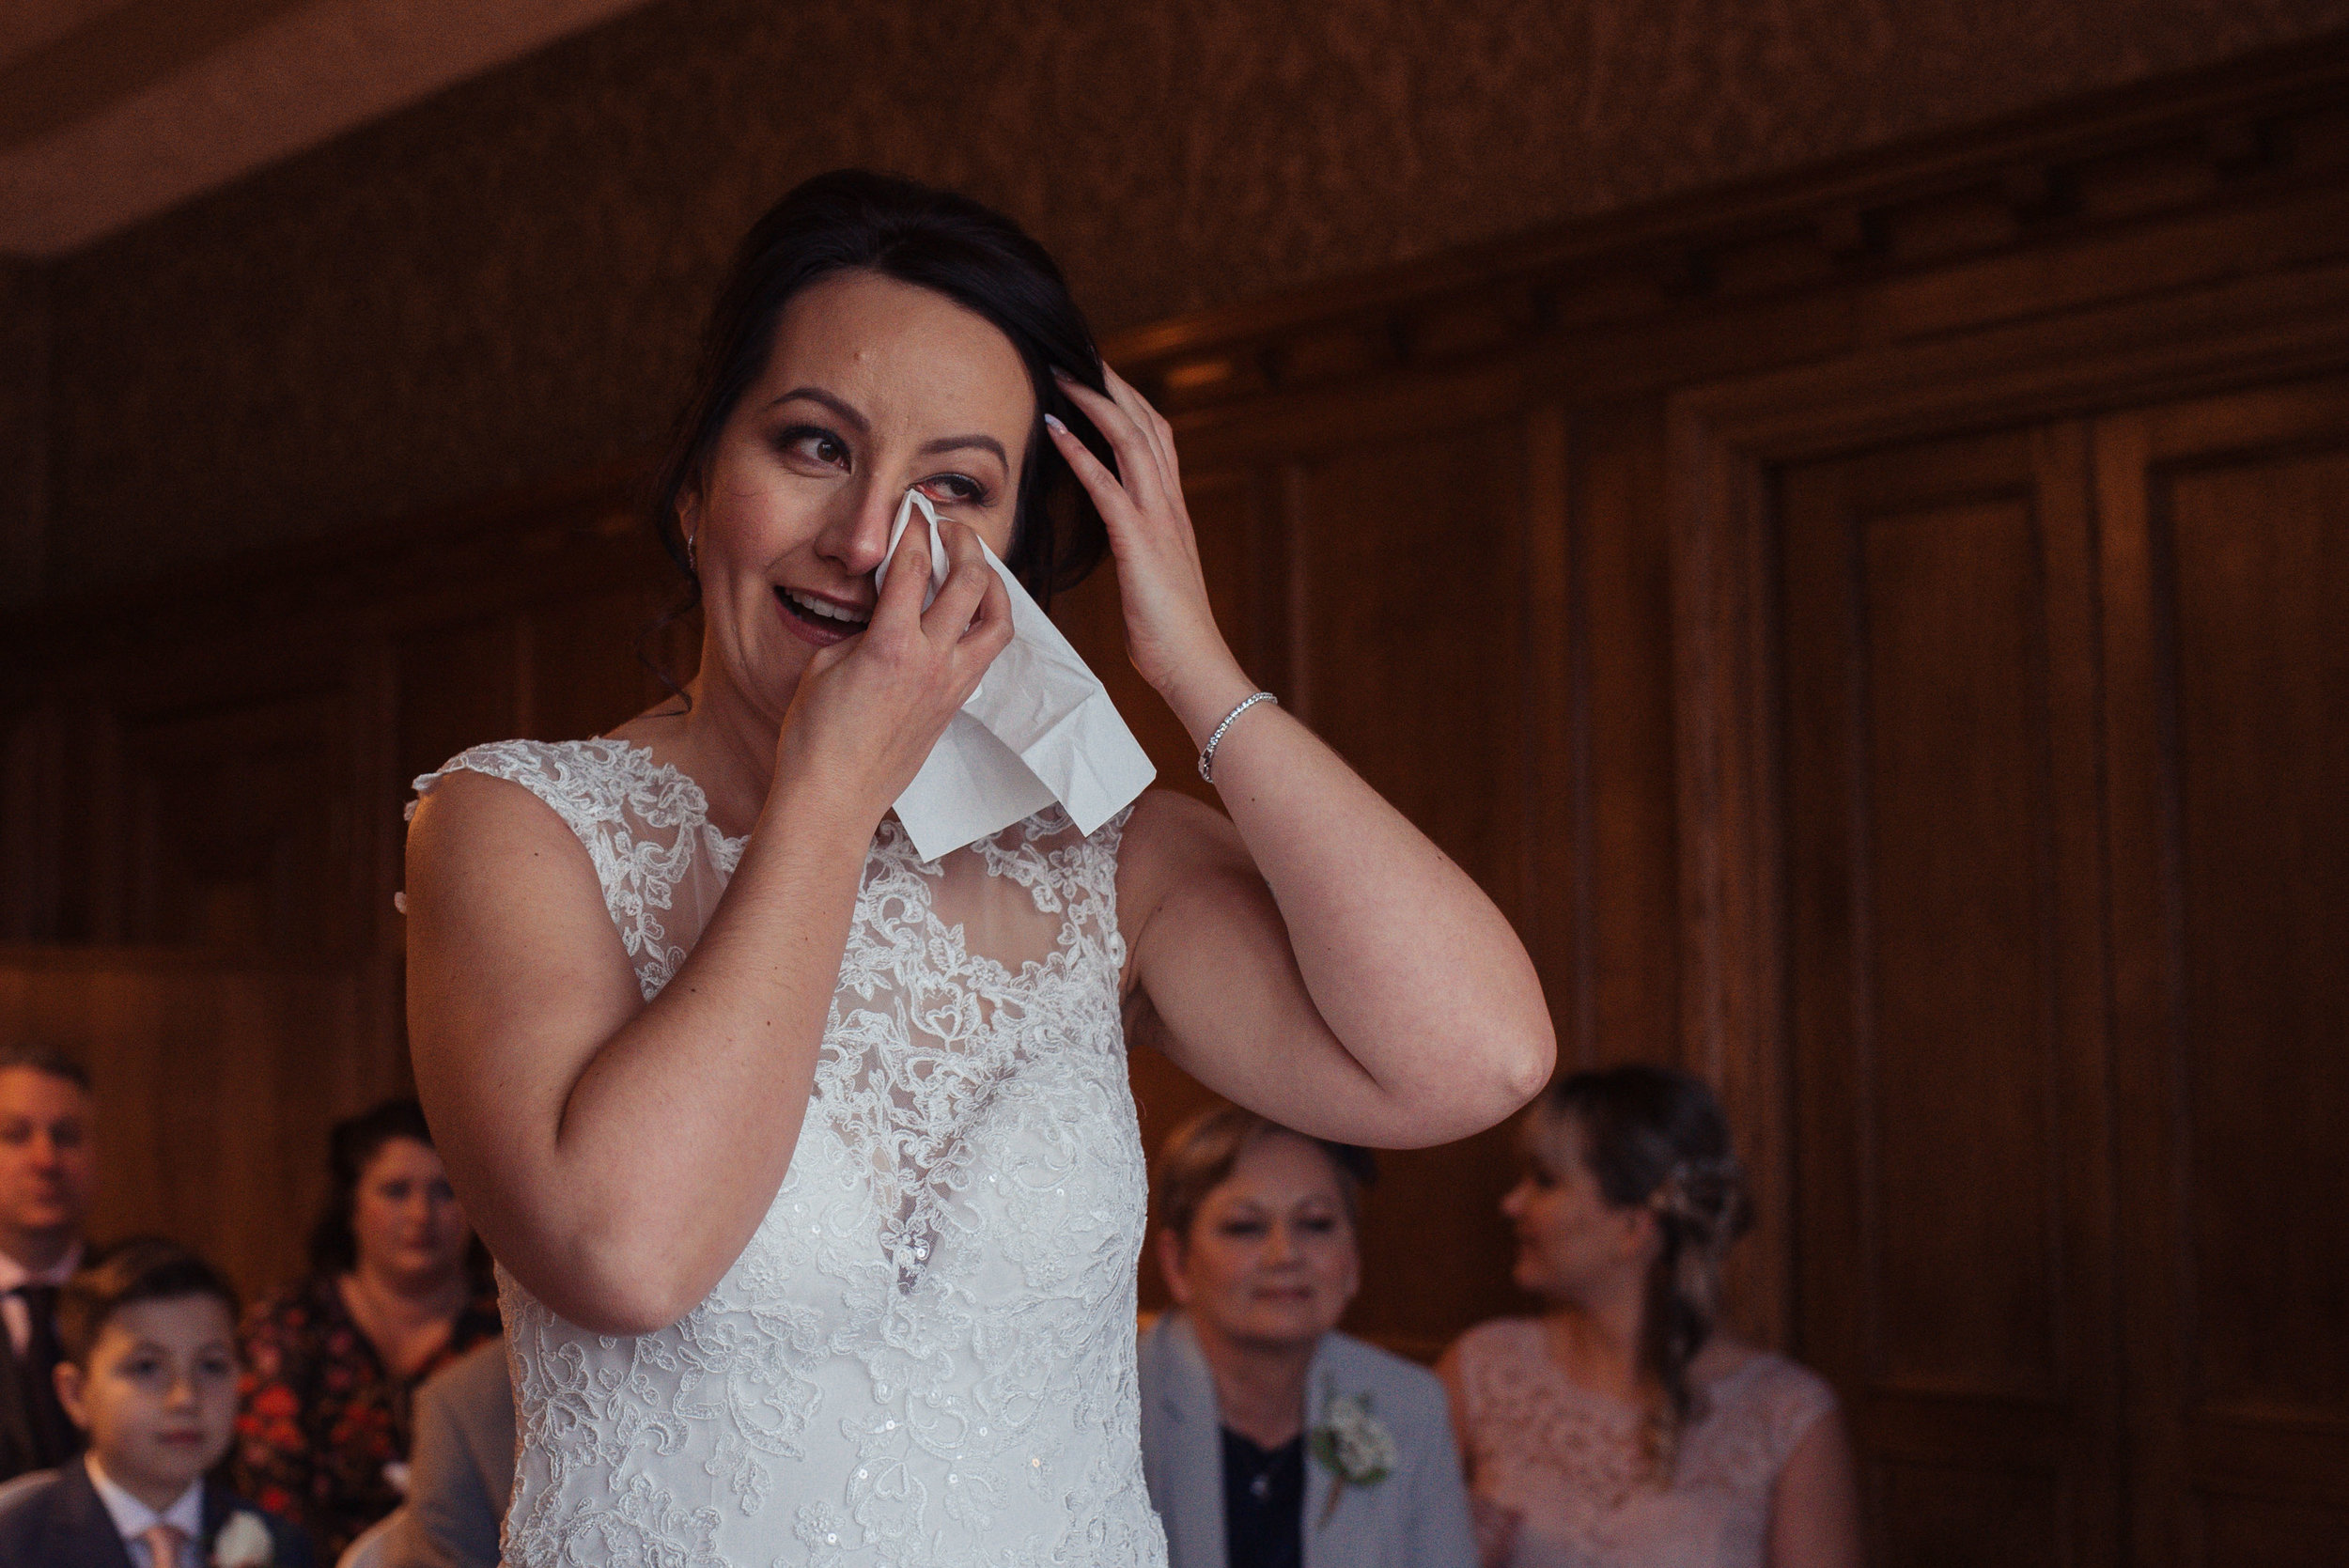 The bride cries at the start of the wedding ceremony